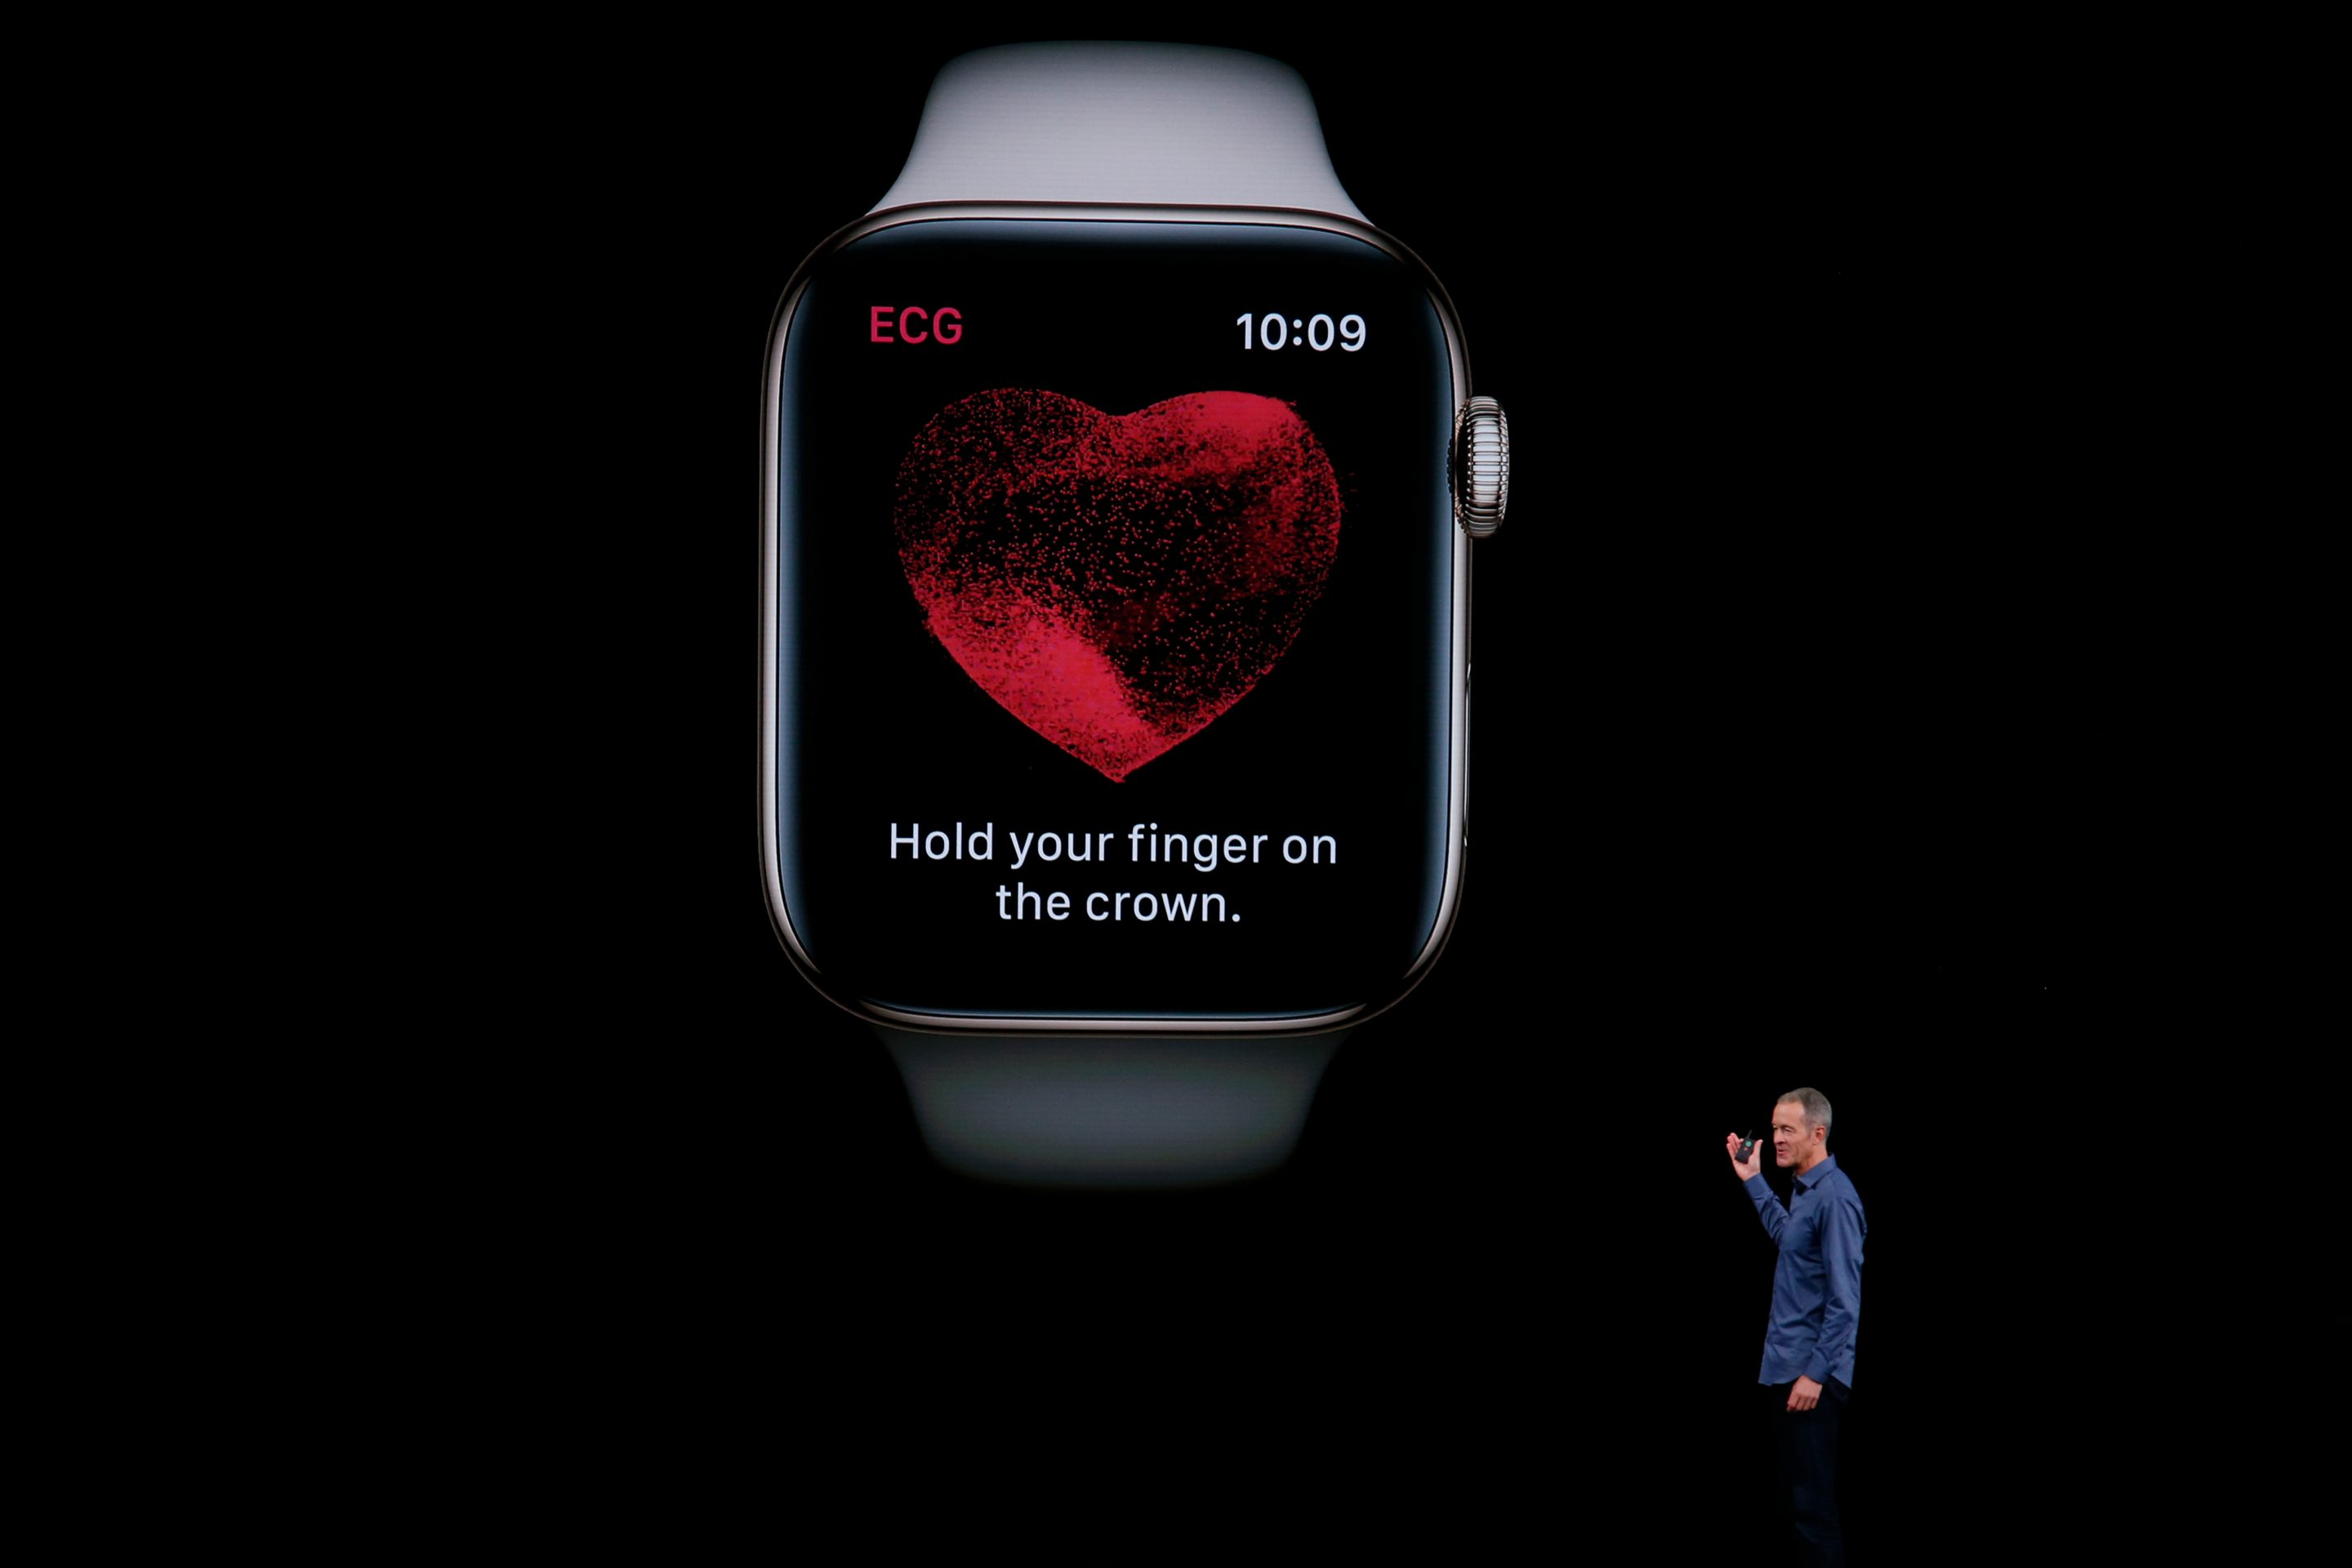 Jeff Williams introduces the new Apple Watch, capable of taking an FDA-approved electrocardiogram, at the company's annual product launch on Wednesday, Sept. 12, 2018, in Cupertino, Calif.